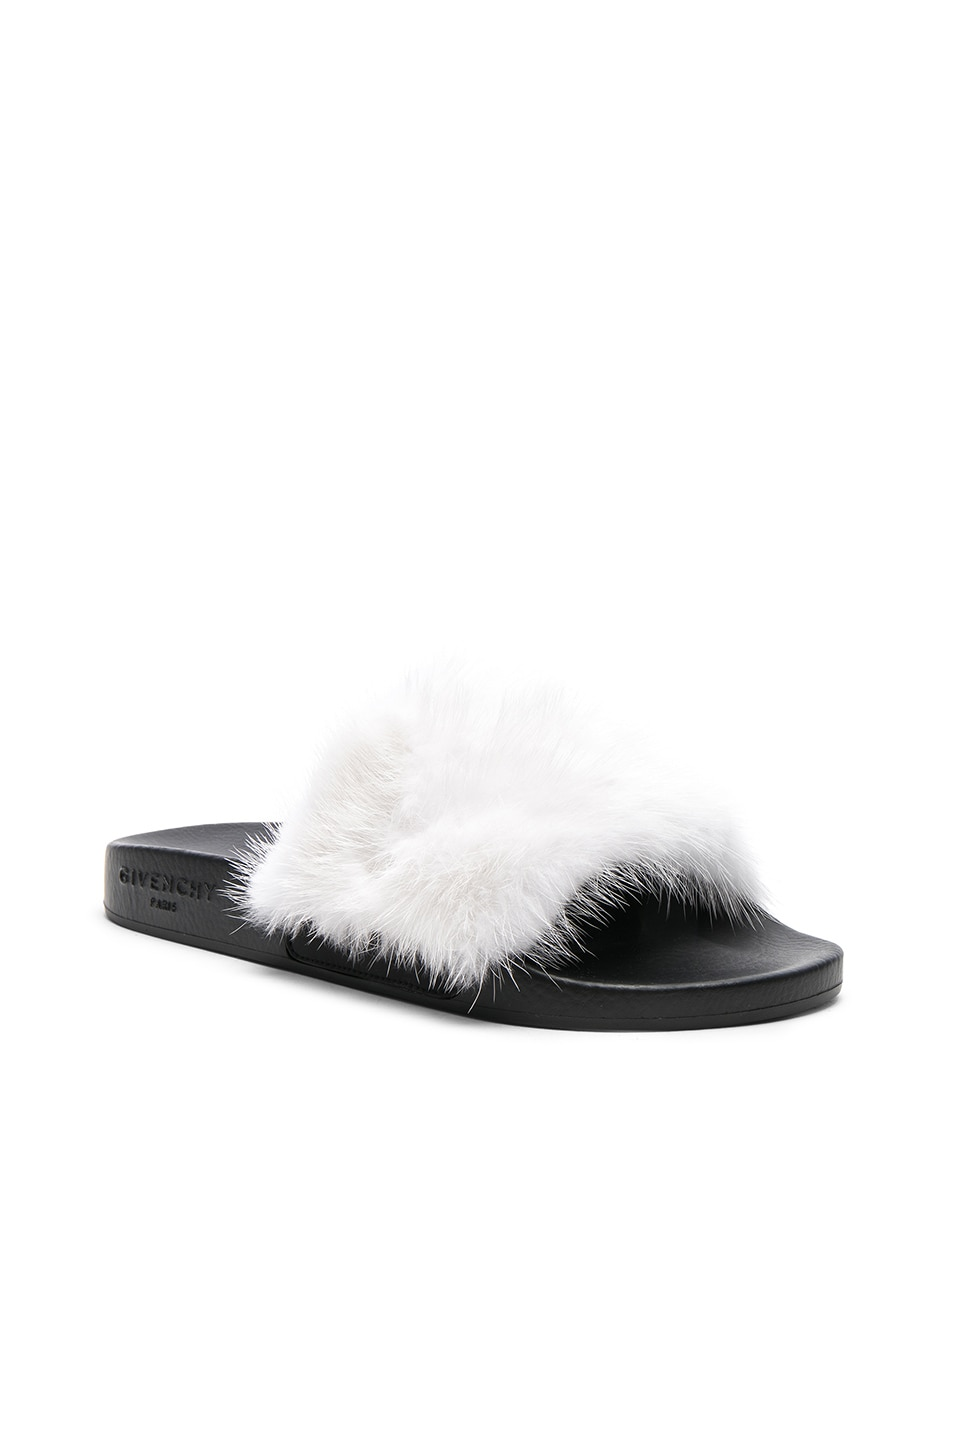 e71f07a85f1c00 Image 2 of Givenchy Mink Fur Slides in White